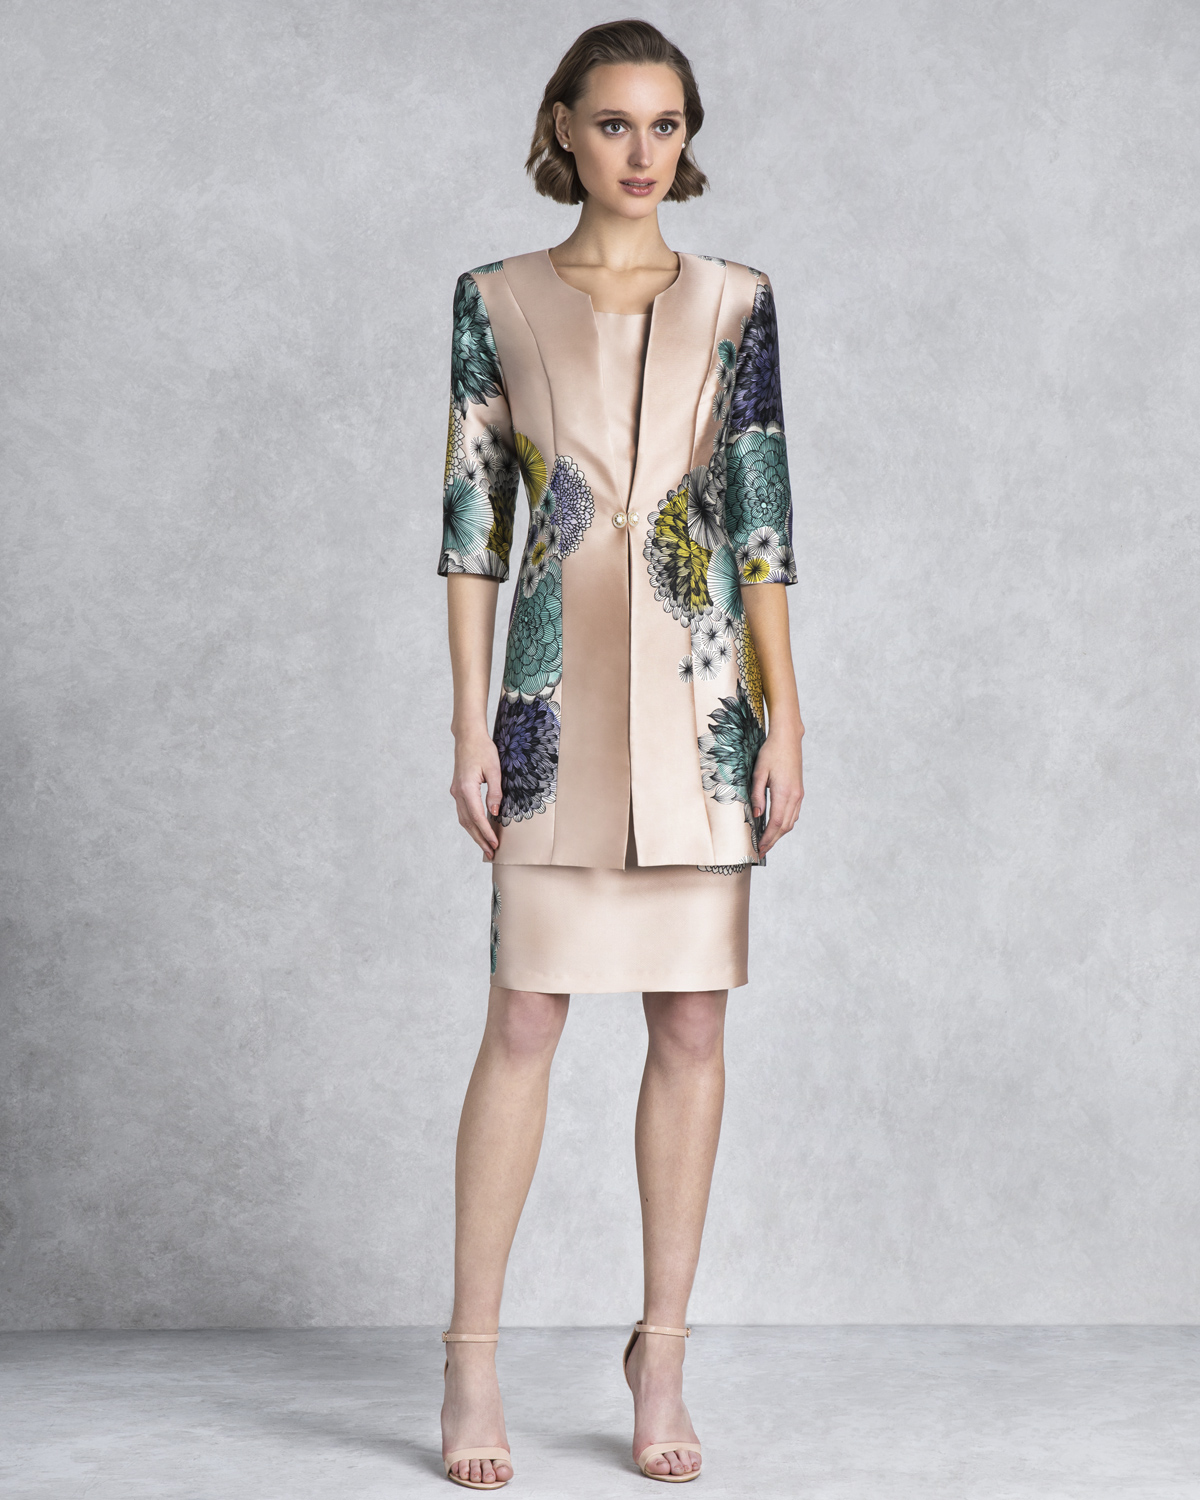 Classic Dresses / Mother of the bride short dress with bolero